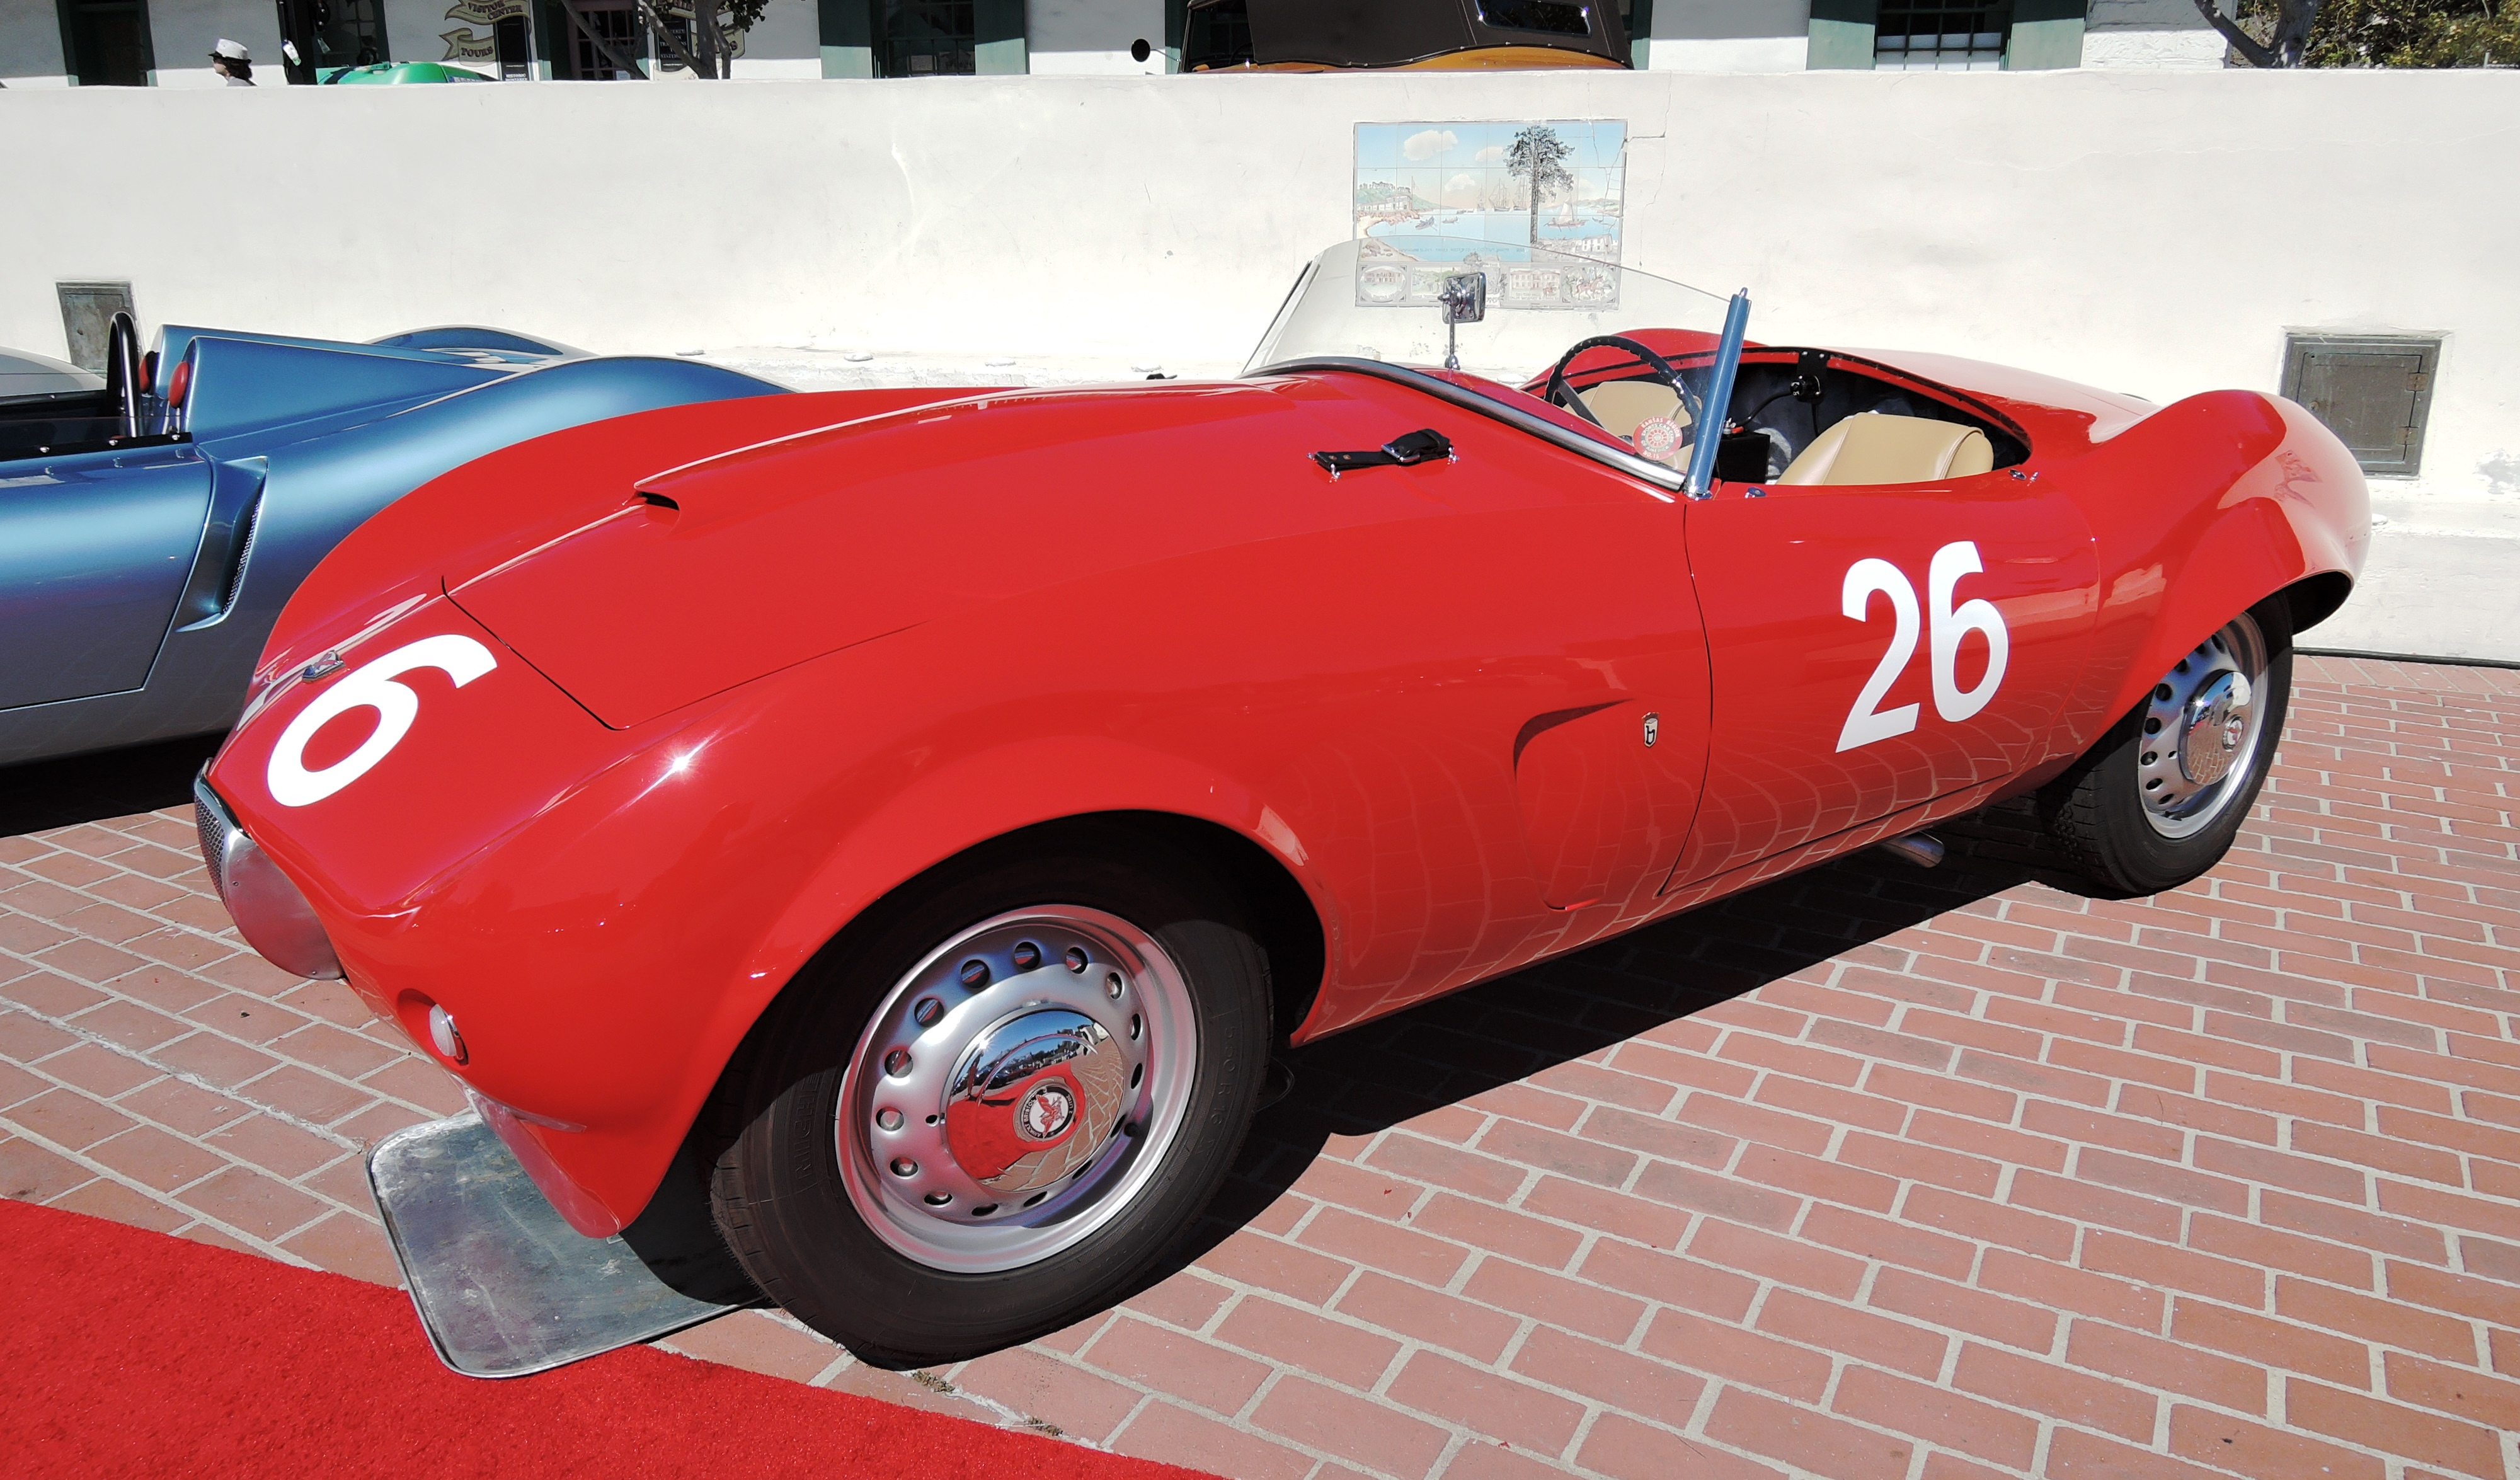 red 1956 Arnolt-Bristol Roadster at RM Sotheby's - classic car auctions